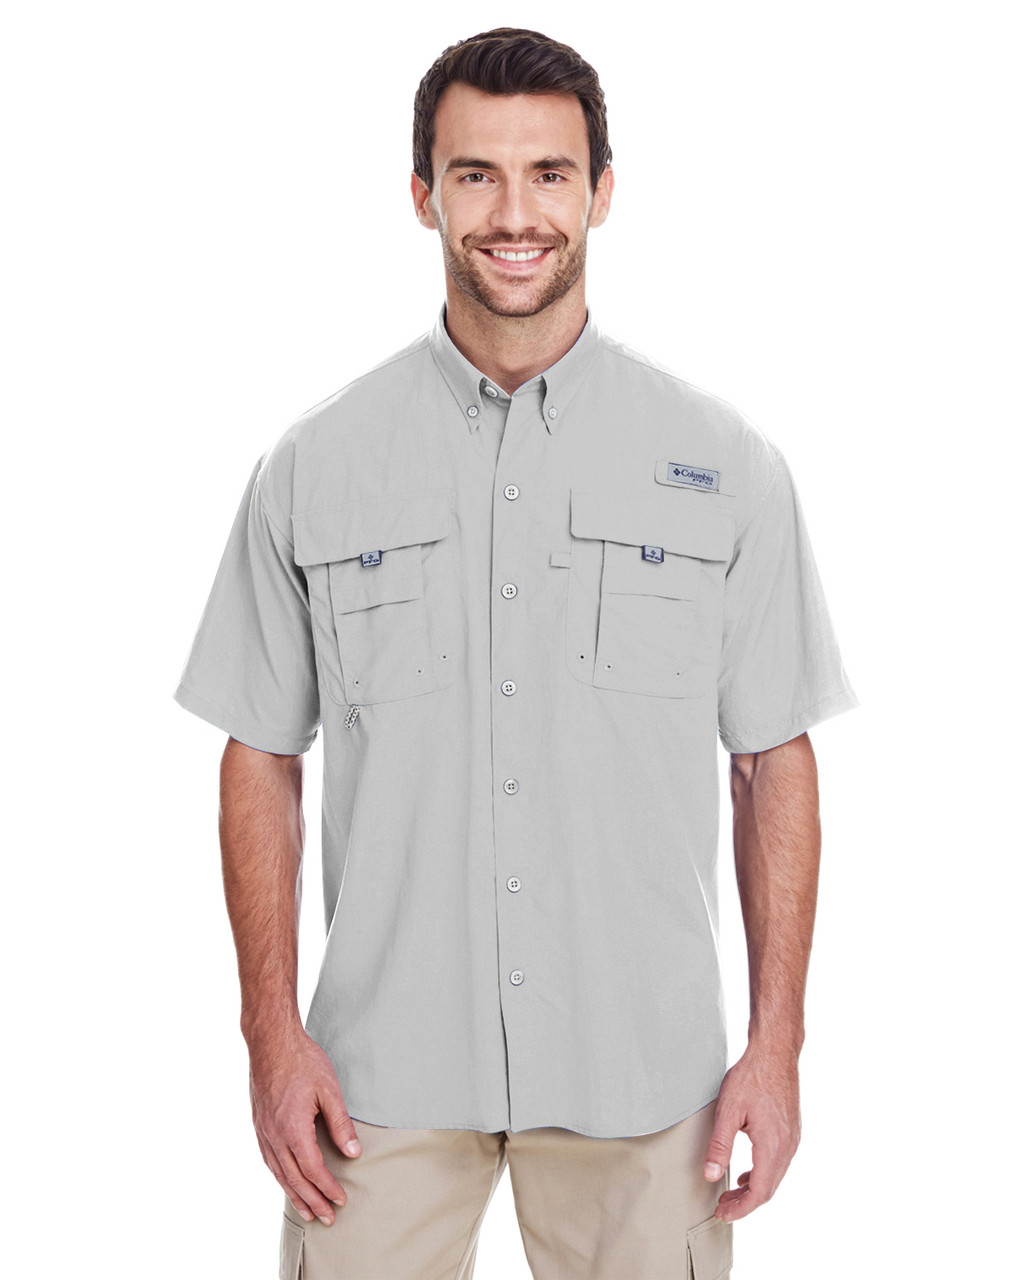 Cool Grey - 7047 Columbia Men's Bahama™ II Short-Sleeve Shirt | BlankClothing.ca